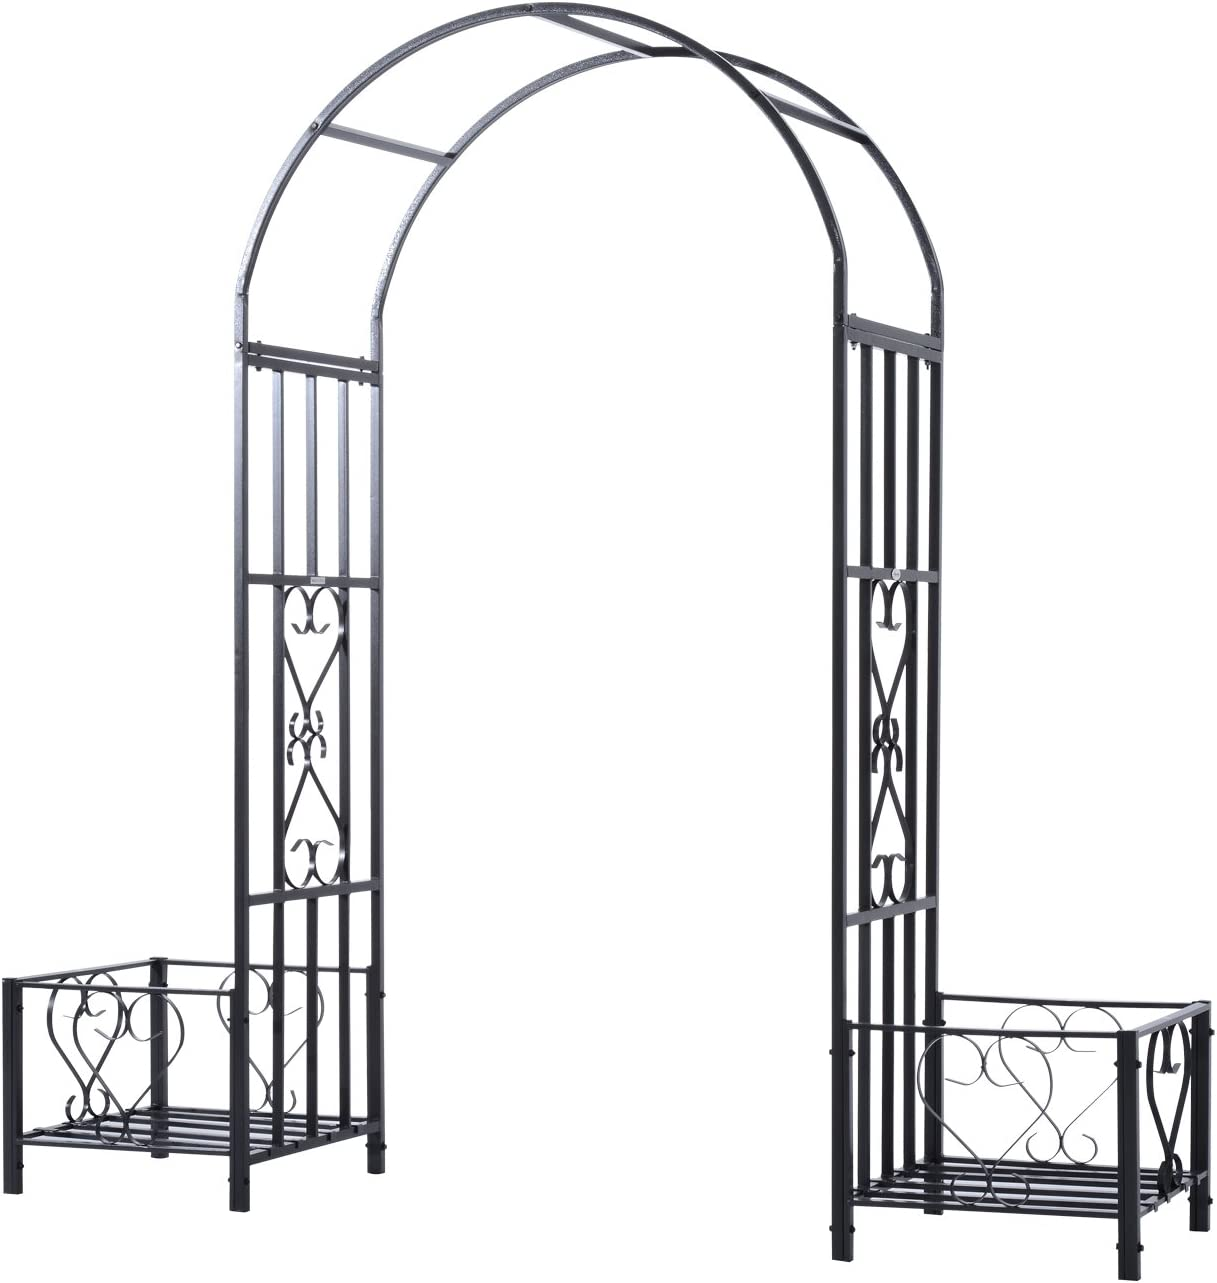 Outsunny Decor Metal Backyard Garden Arbor Arch Trellis with Side Planter Boxes, Beautiful Classic Style, & Steel Build